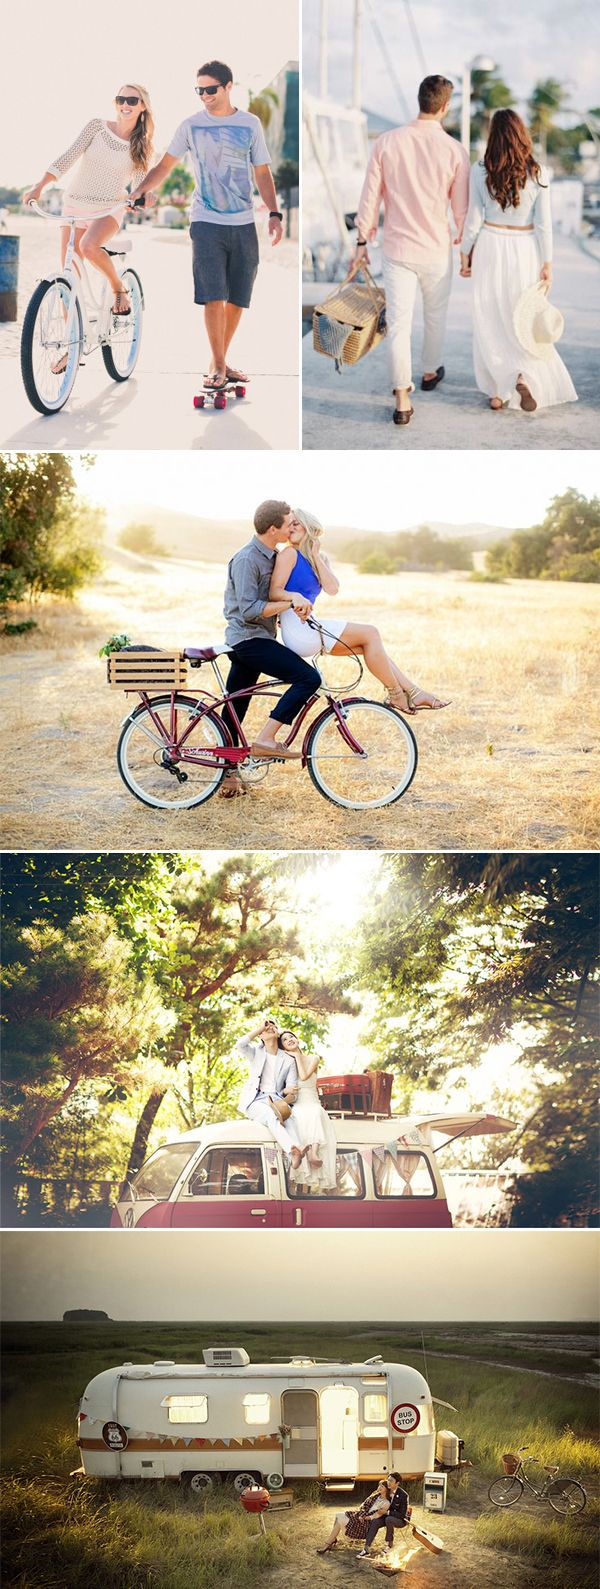 A Sweet Date! 25 Cute and Romantic Engagement Photo Ideas - Romantic Getaway